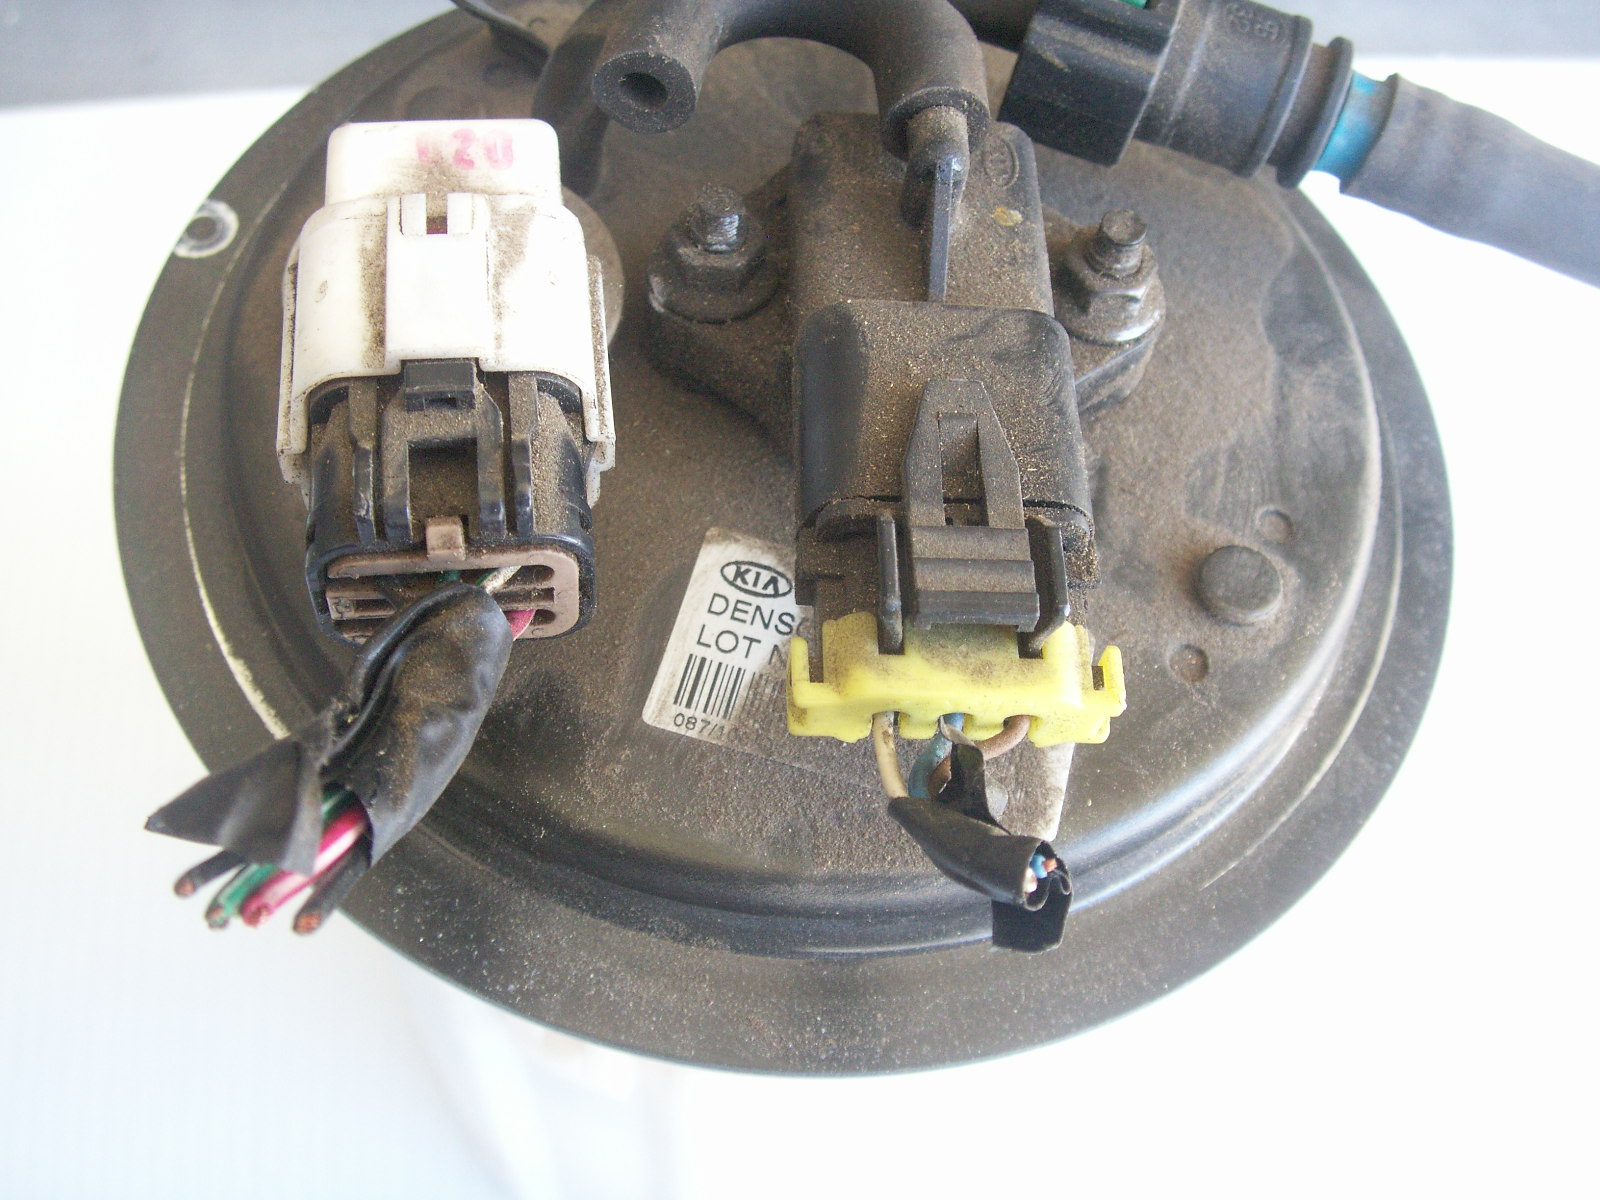 4939d1261507926 flue gage now working 2002 kia fuel pump 006 fuel gage showing wrong after 1 2 tank kia forum spectra fuel pump wiring diagram at virtualis.co